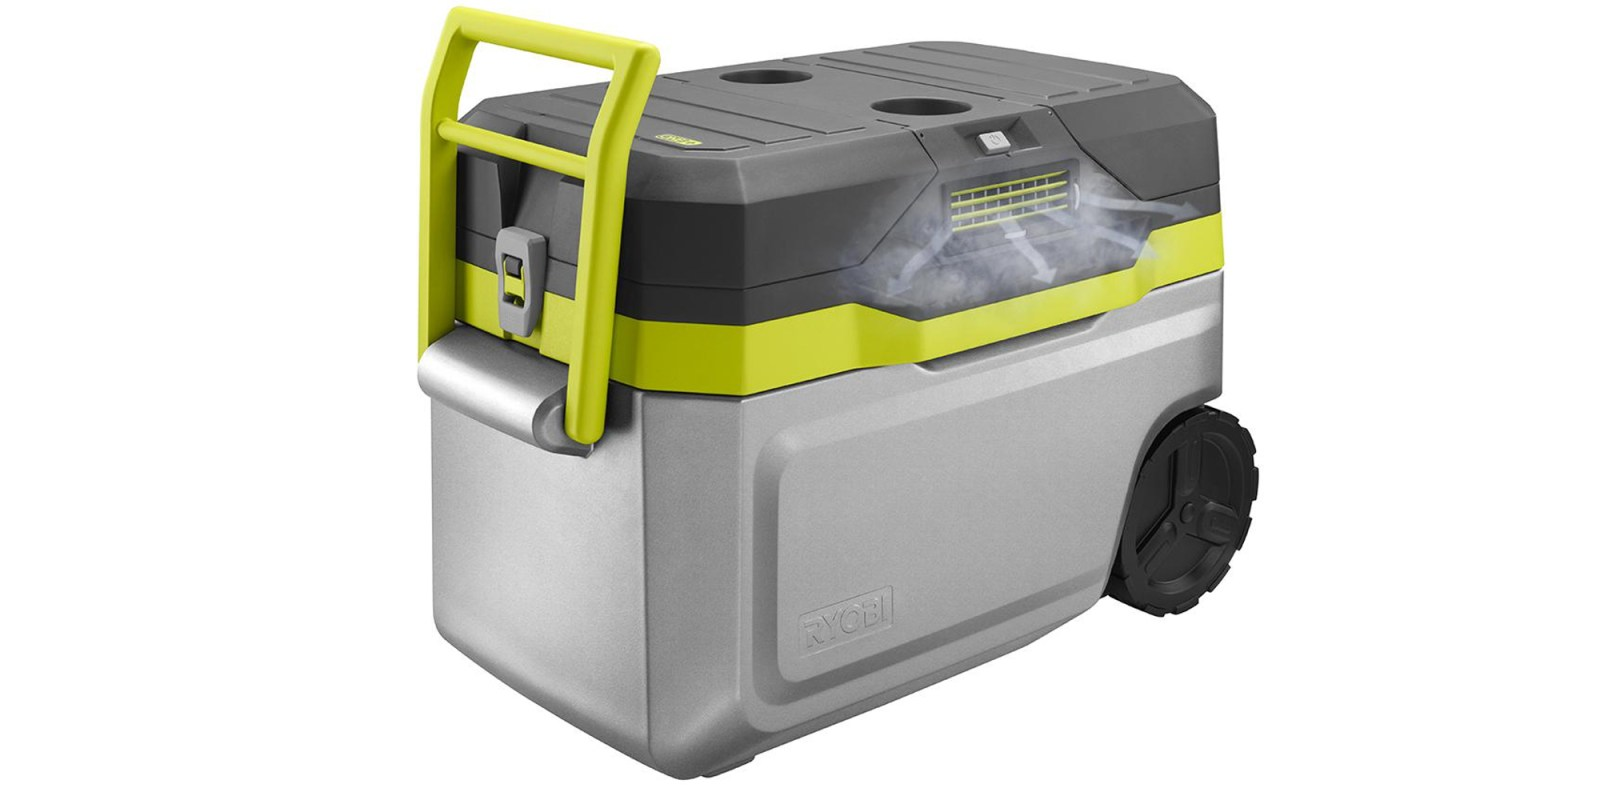 Ryobi's Cooler will keep both you and your drinks chilled this summer